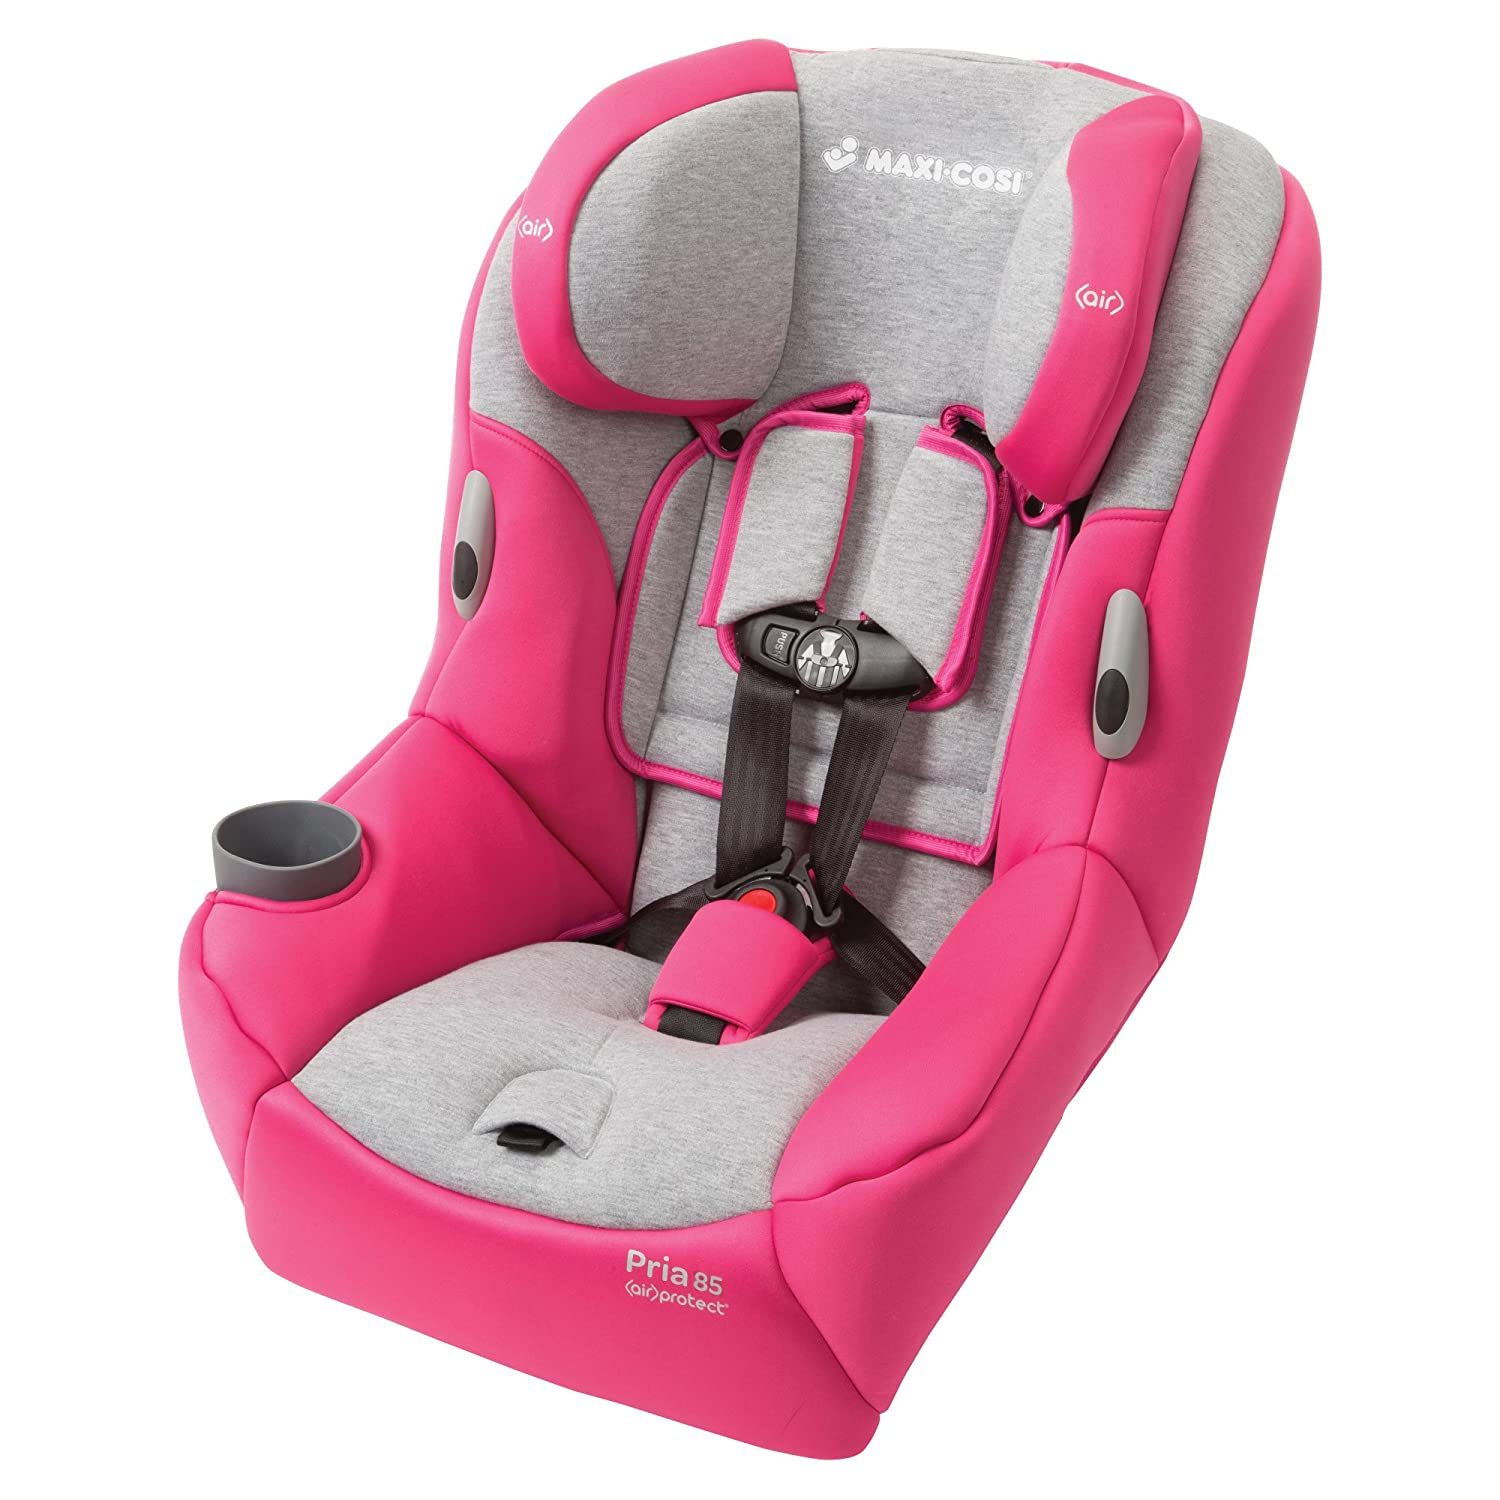 Maxi-Cosi Pria 85 Convertible Car Seat, Passionate Pink by ...